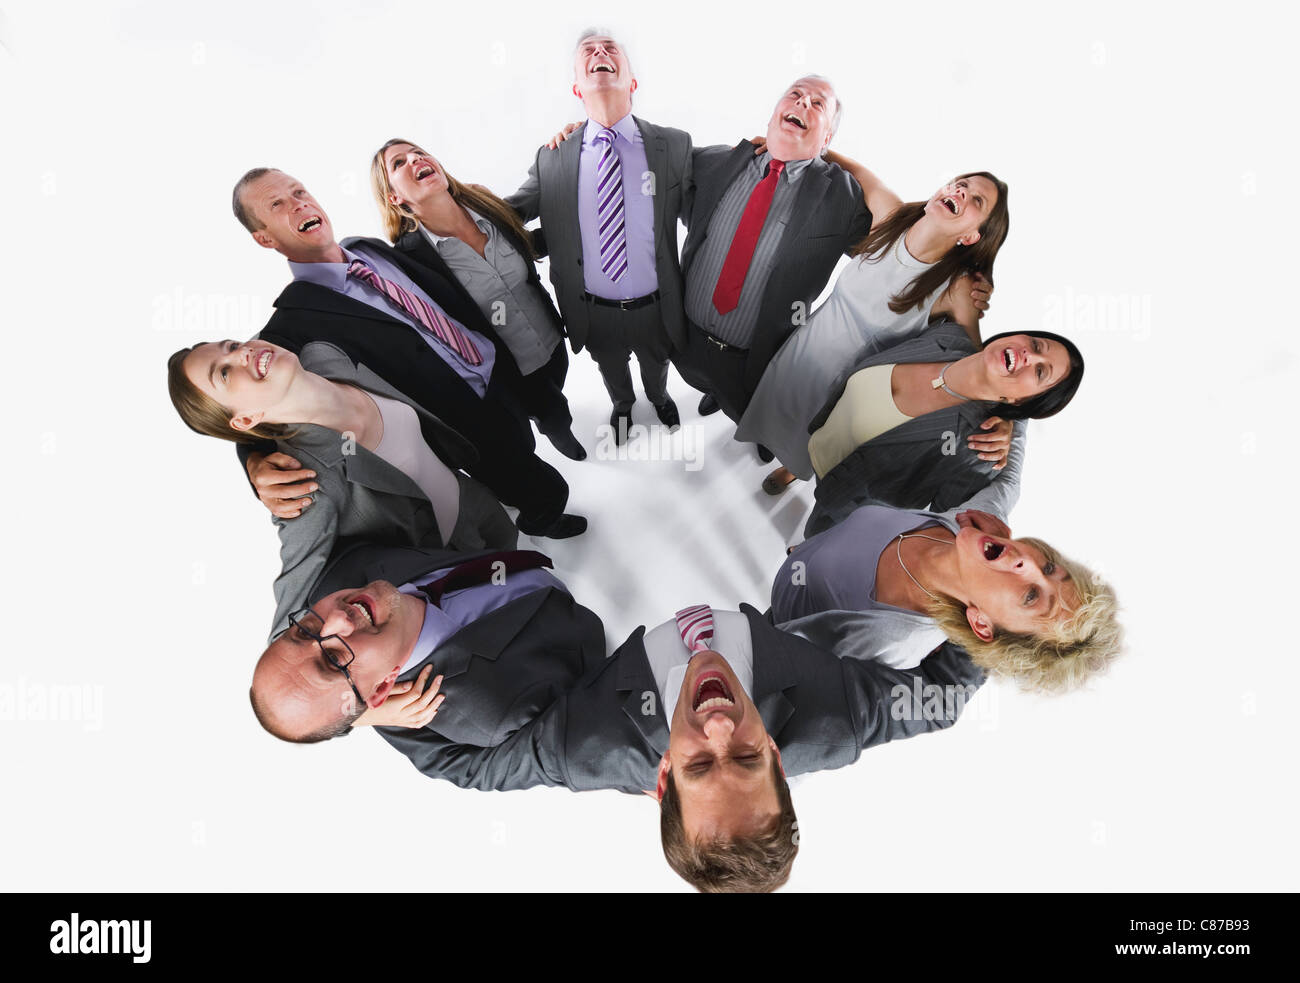 Business people forming huddle and looking up against white background - Stock Image